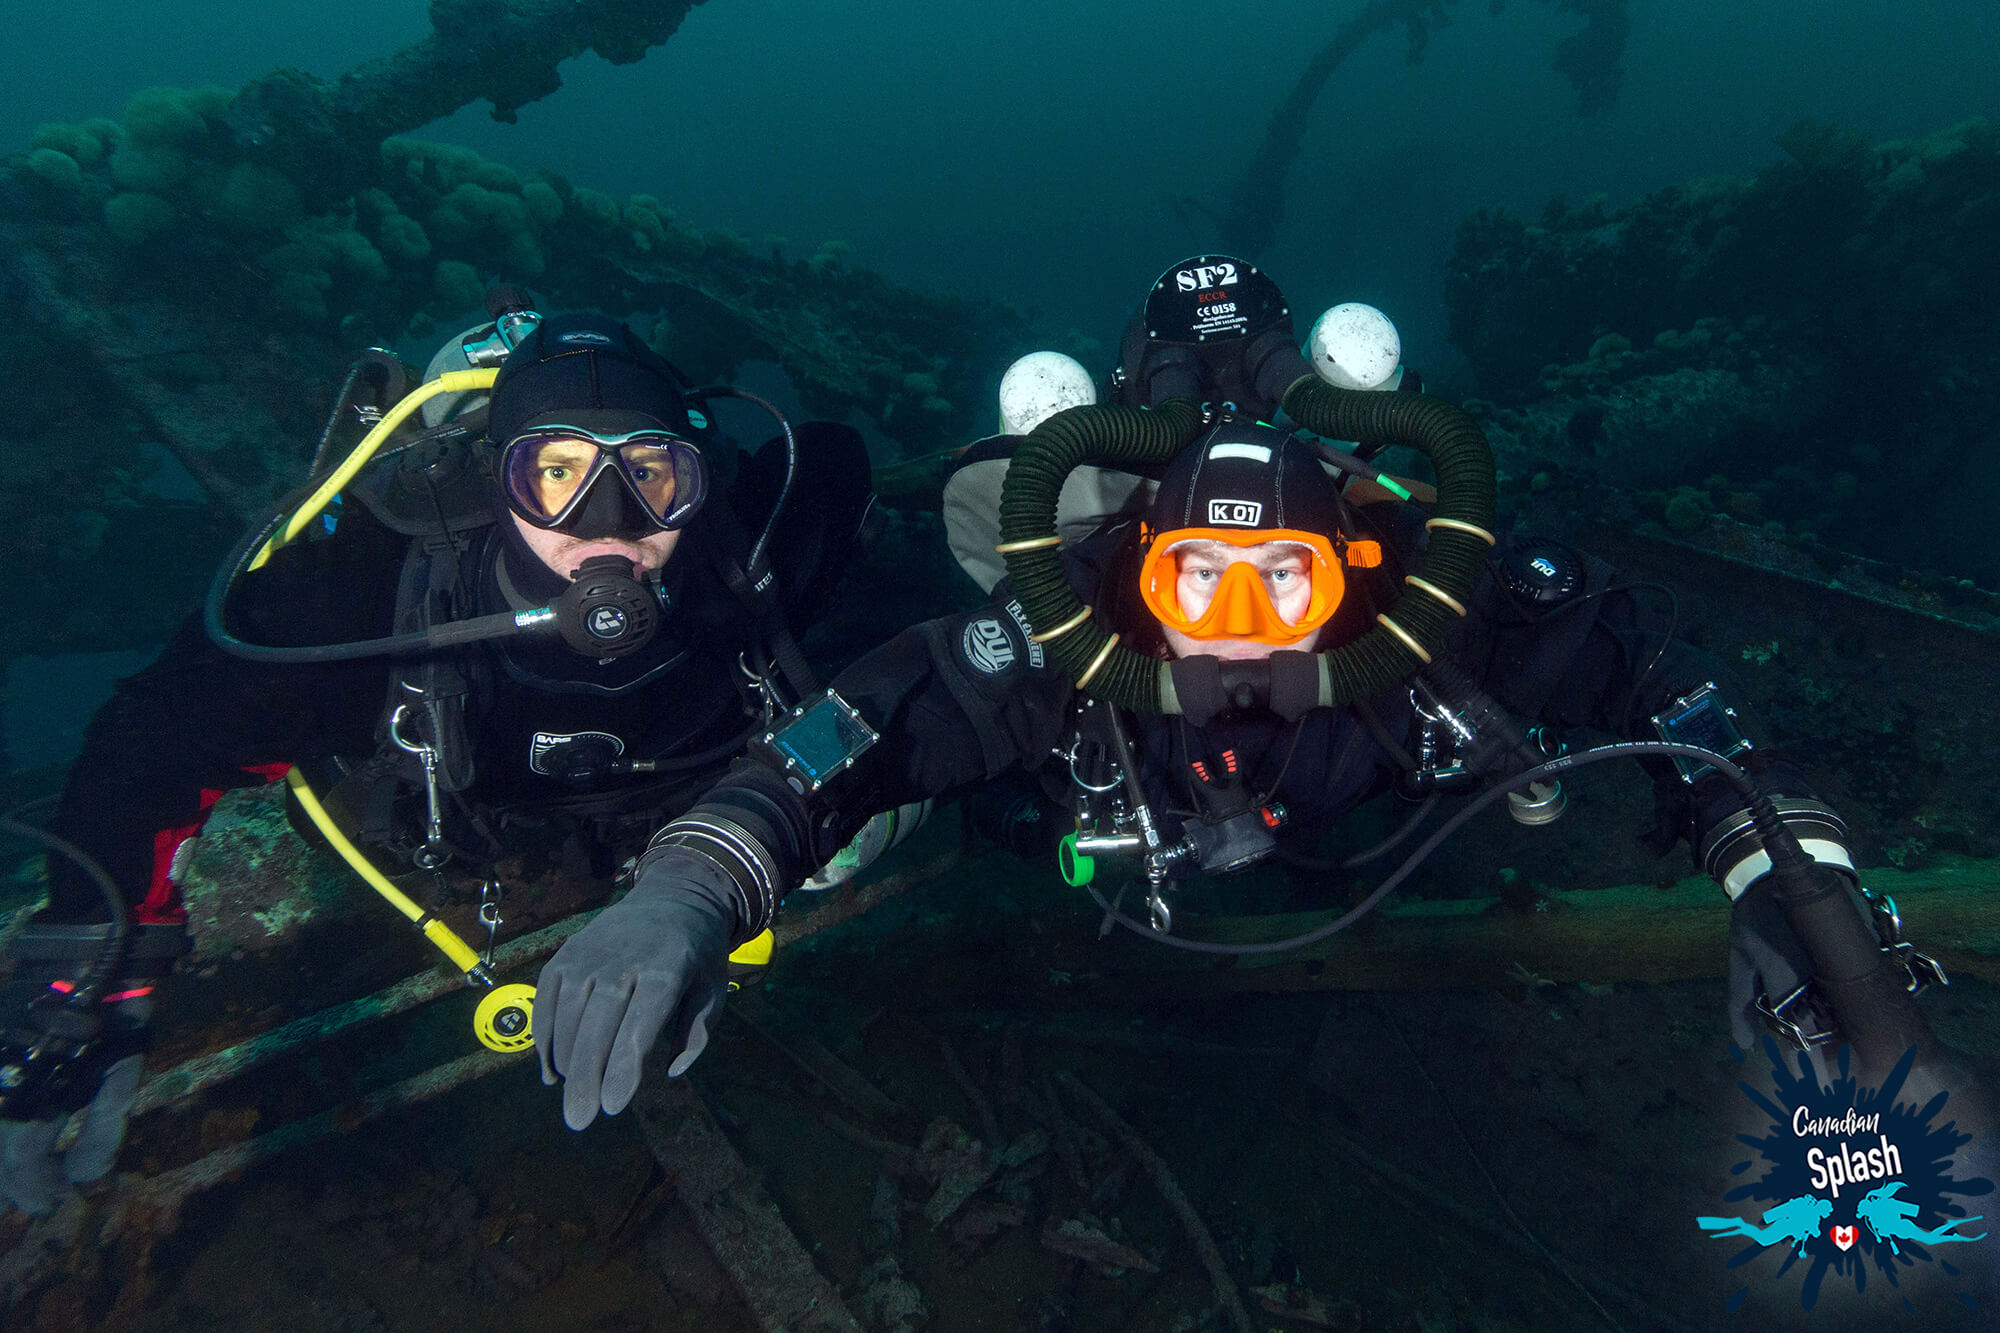 Rebreather Diver Mike And Scuba Diver Joey On The Lord Strathcona Shipwreck In Bell Island, Newfoundland, Canada